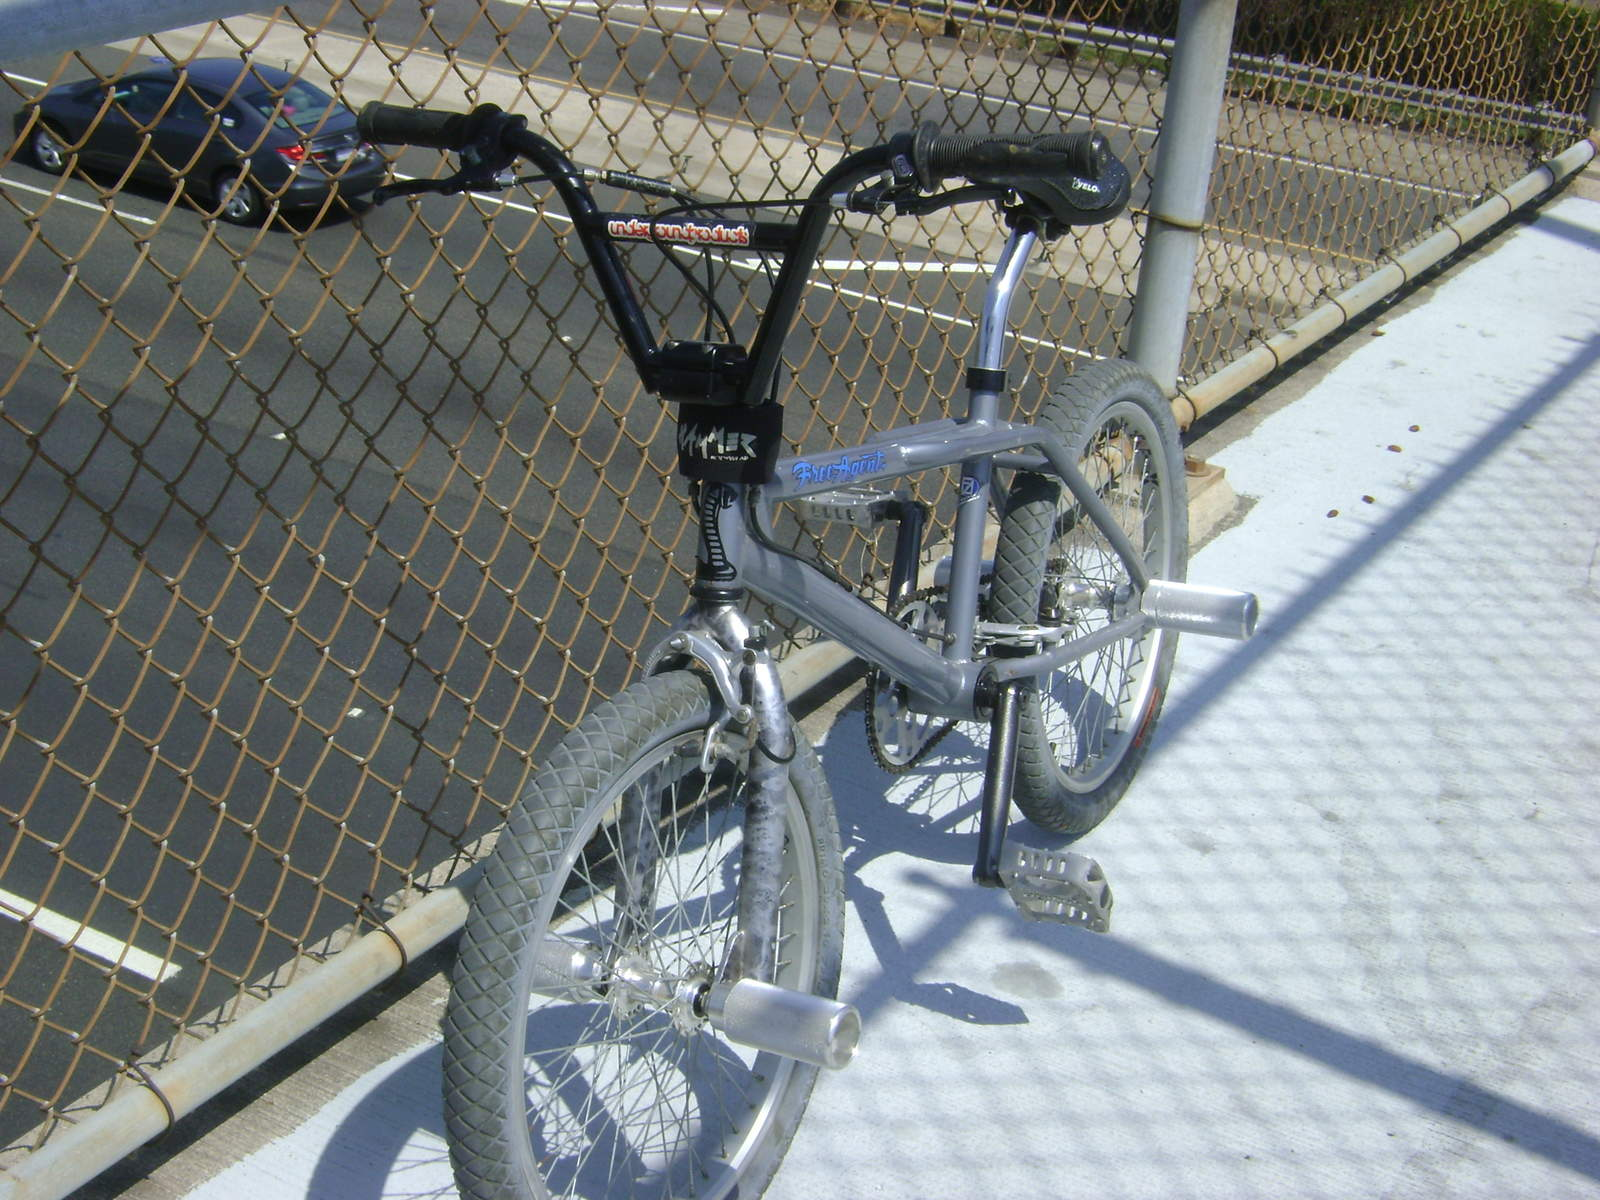 http://uploads.bmxmuseum.com/user-images/6905/dsc005365a21837358.jpg